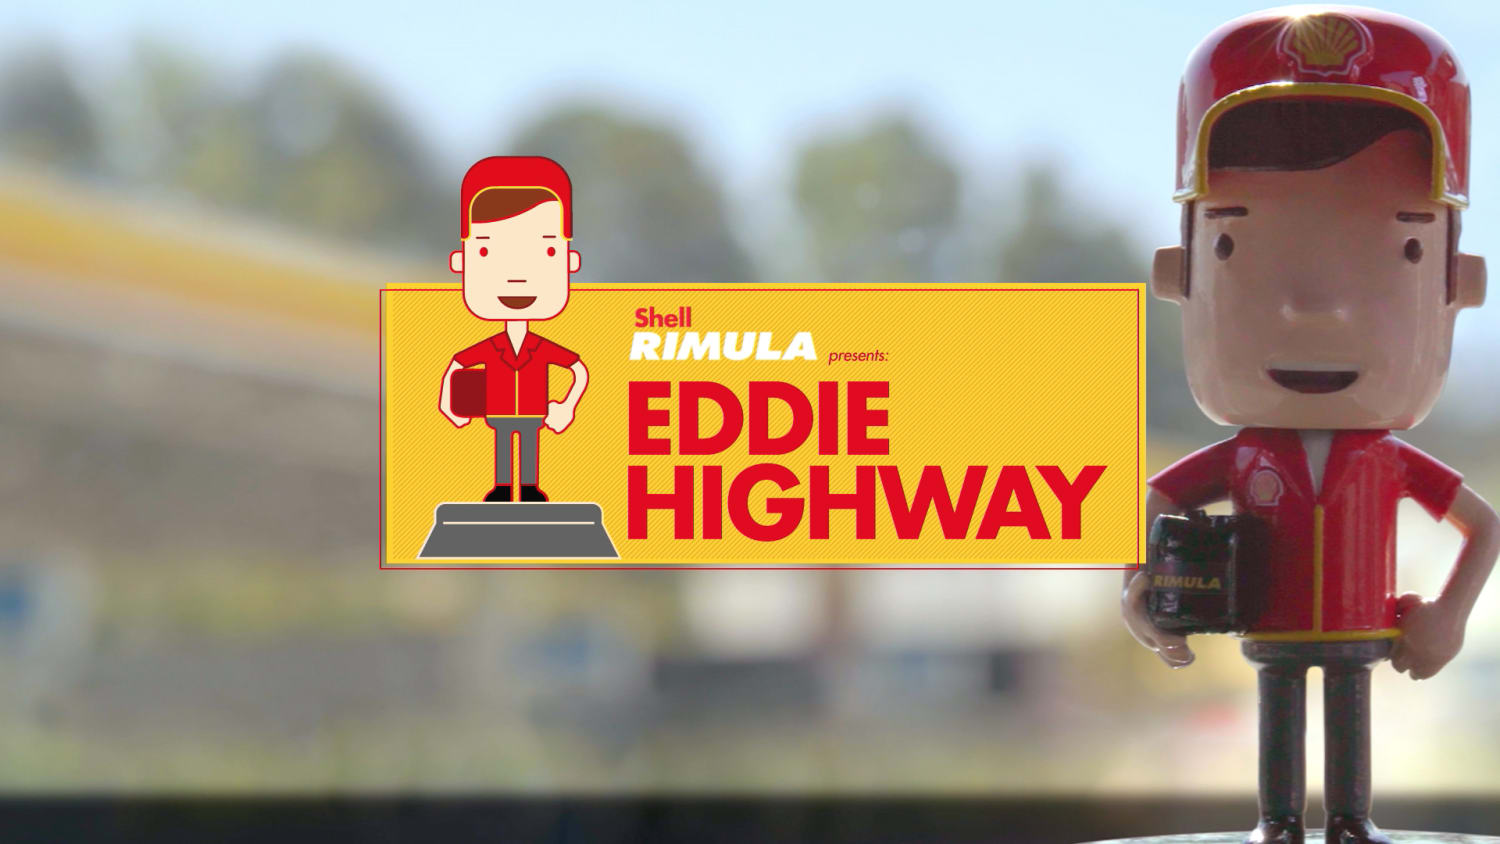 Wunderman Thompson Sao Paulo WORK eddiehighay shell media 2